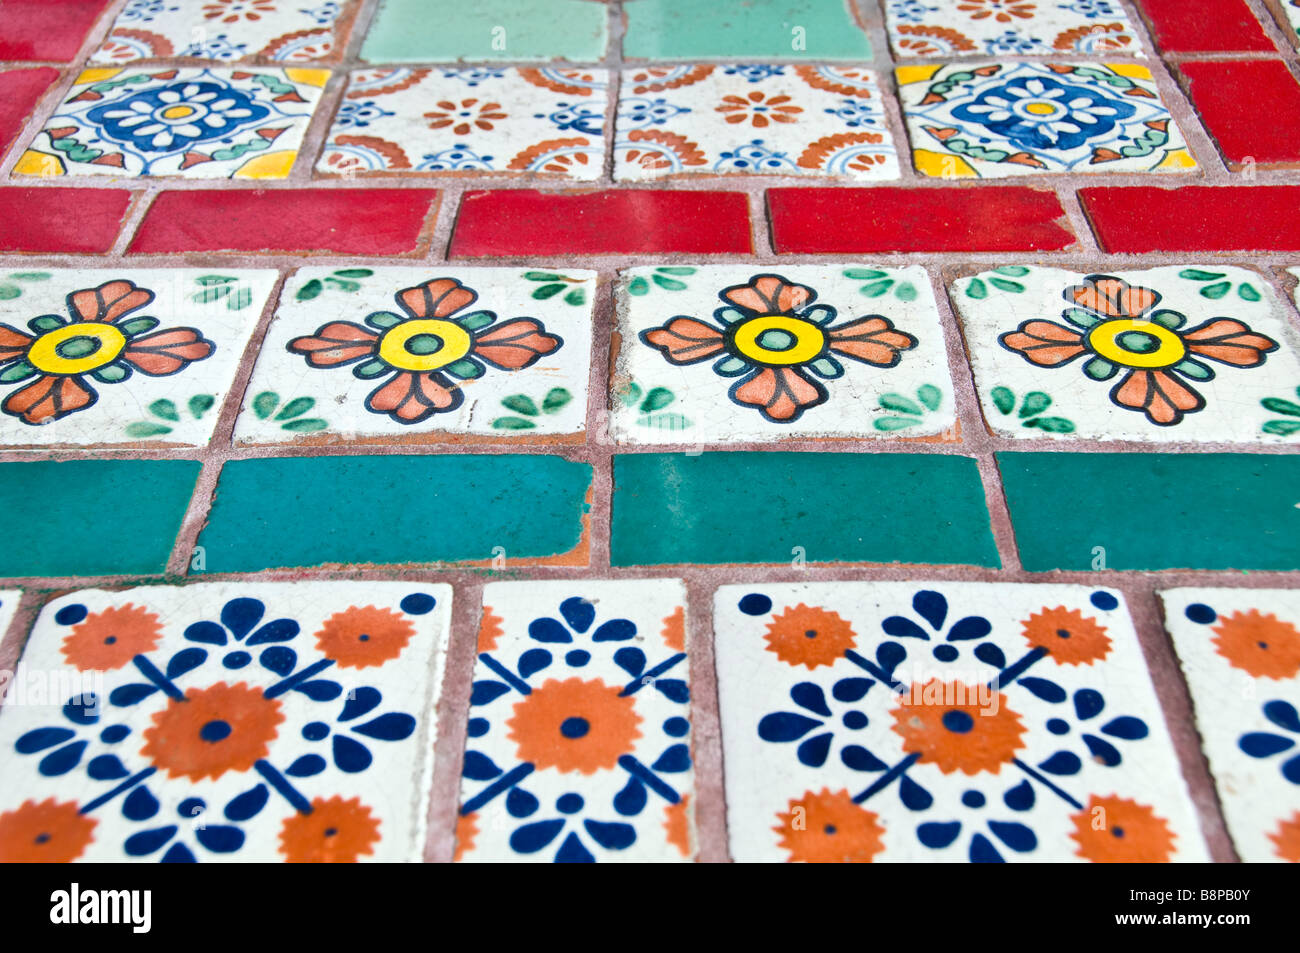 Colorful mexican ceramic tiles brightly colored painted designs colorful mexican ceramic tiles brightly colored painted designs san antonio texas dailygadgetfo Gallery